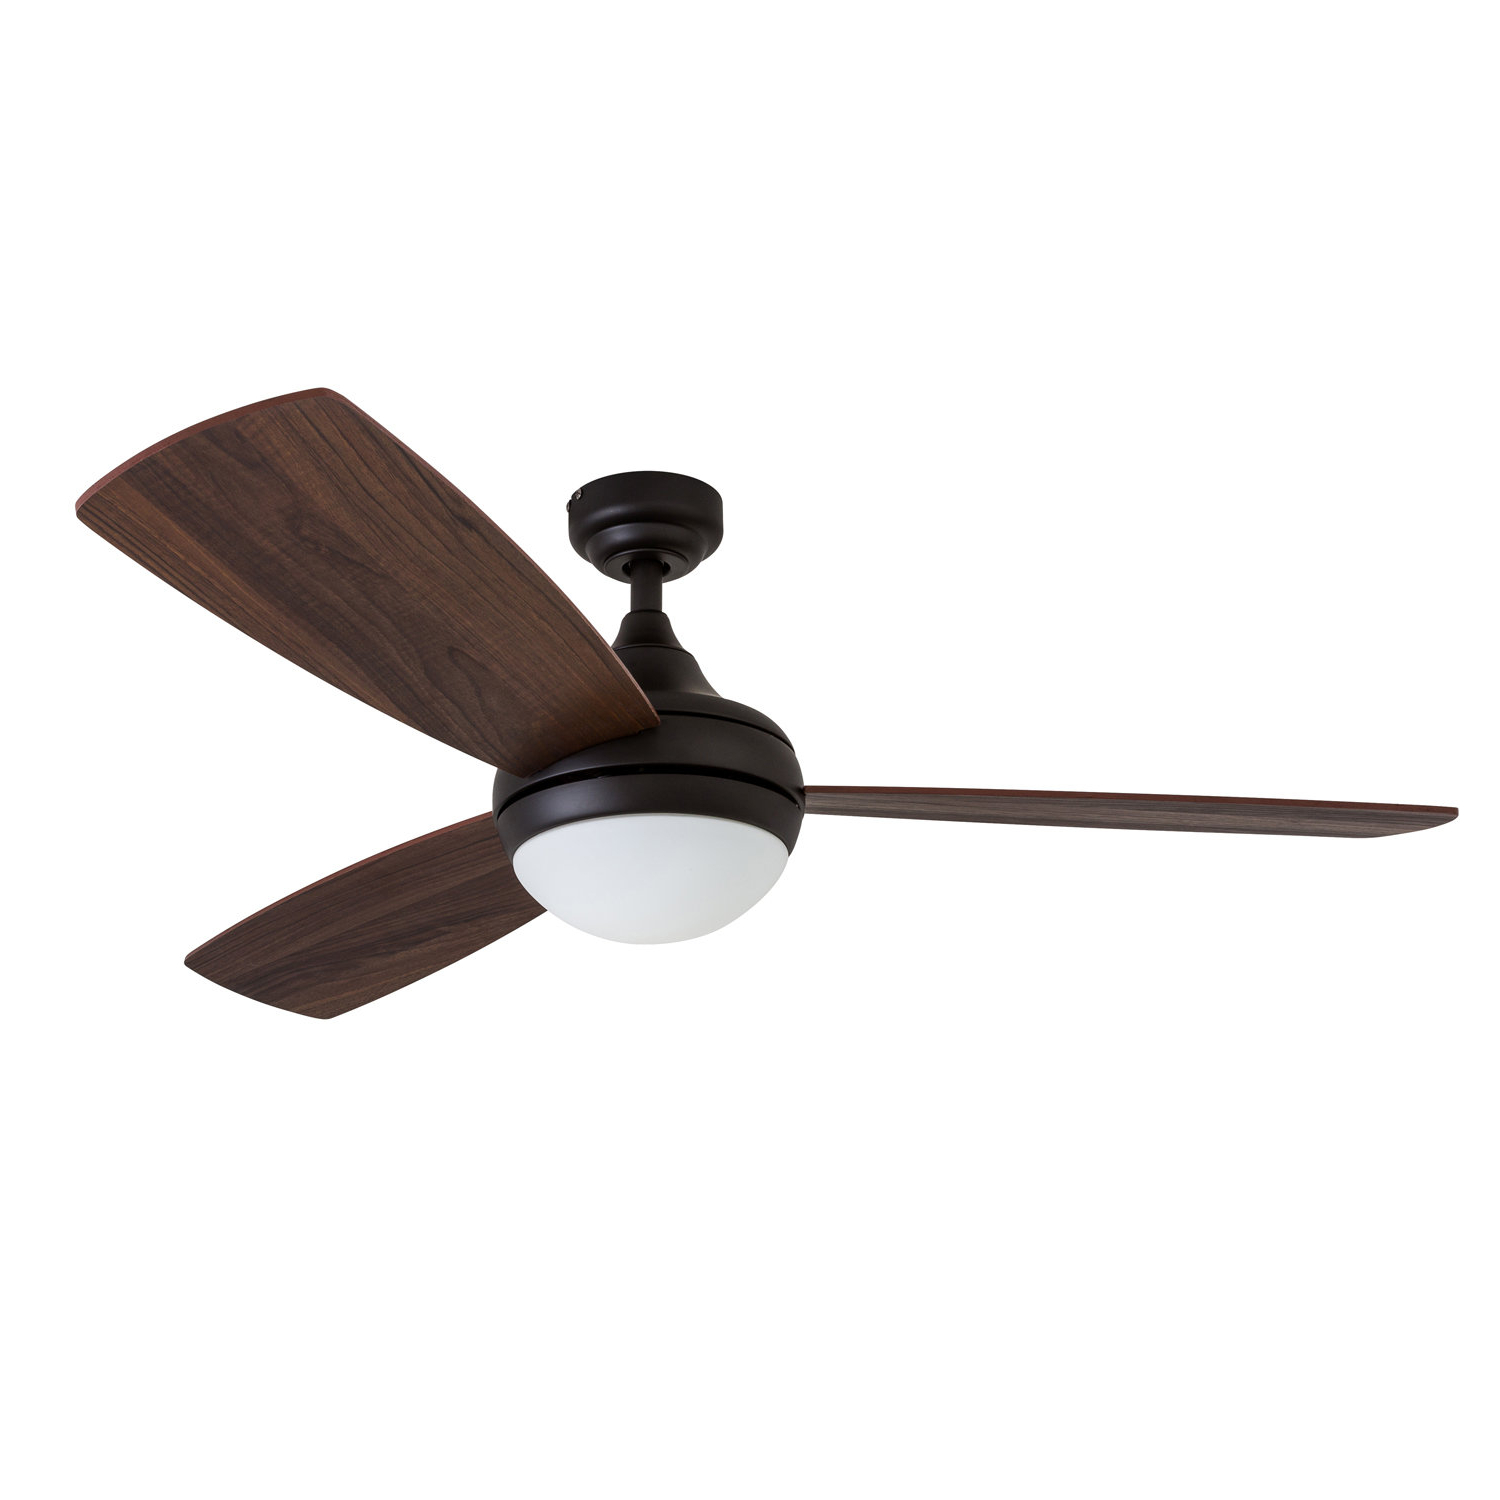 Allmodern Intended For Preferred Embrace 3 Blade Ceiling Fans (View 8 of 20)